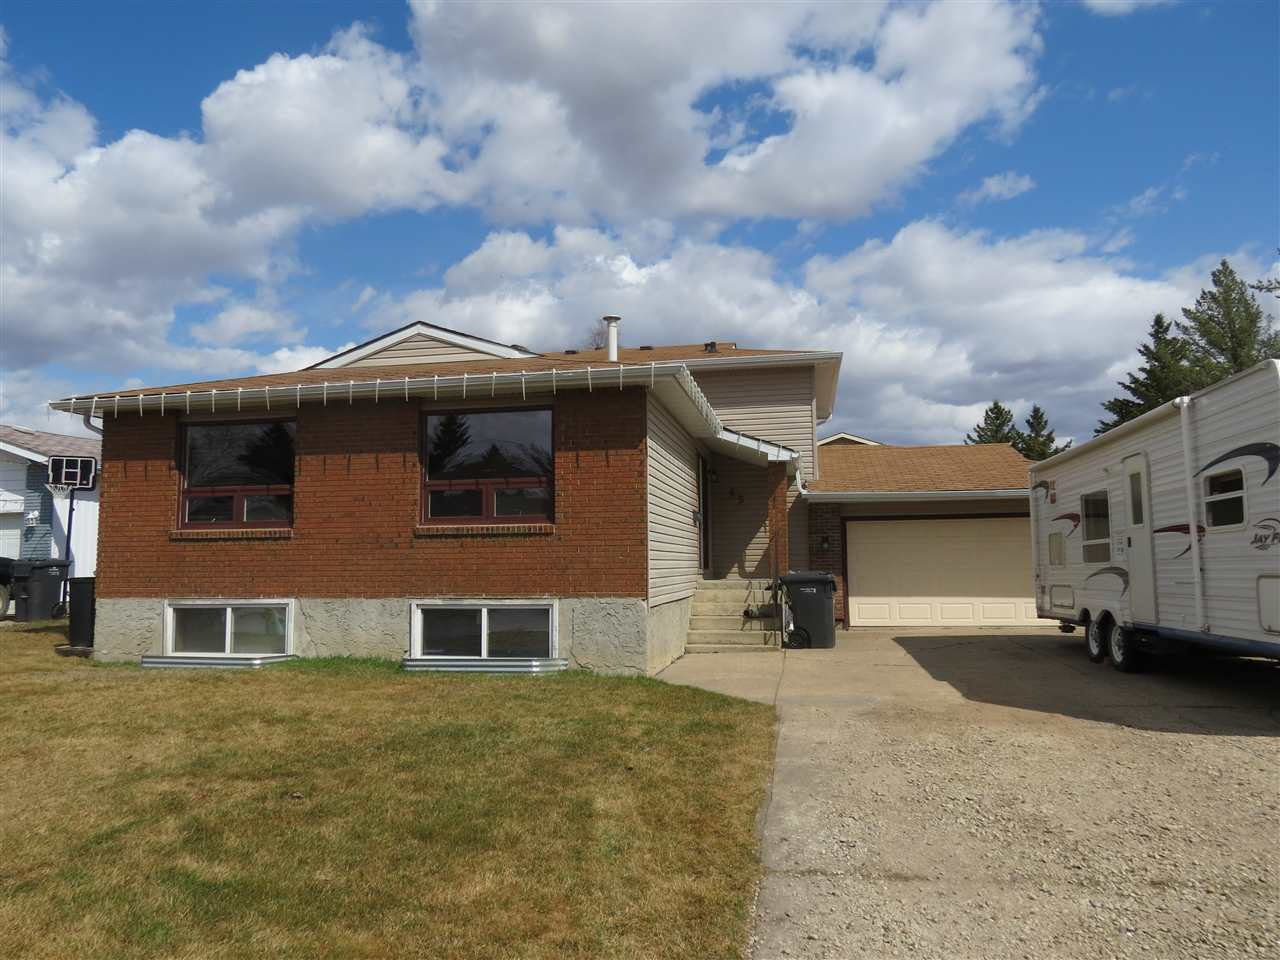 This 4 level split with 3 levels above grade with walk out on 3rd level to large back yard. Located in the hamlet of Cardiff just 15 minutes north of St Albert and close to Cardiff Golf and Country Club. 5 bedrooms and 3 bathrooms and fully finished 4th level with Rec room 5th bedroom and cold storage. The main level has updated Kitchen in 2011 with hardwood flooring throat and leads to a sunken family room with a brick fireplace. The main also has a dining room and a living room . Other upgrades include windows, siding, furnace and HWT.